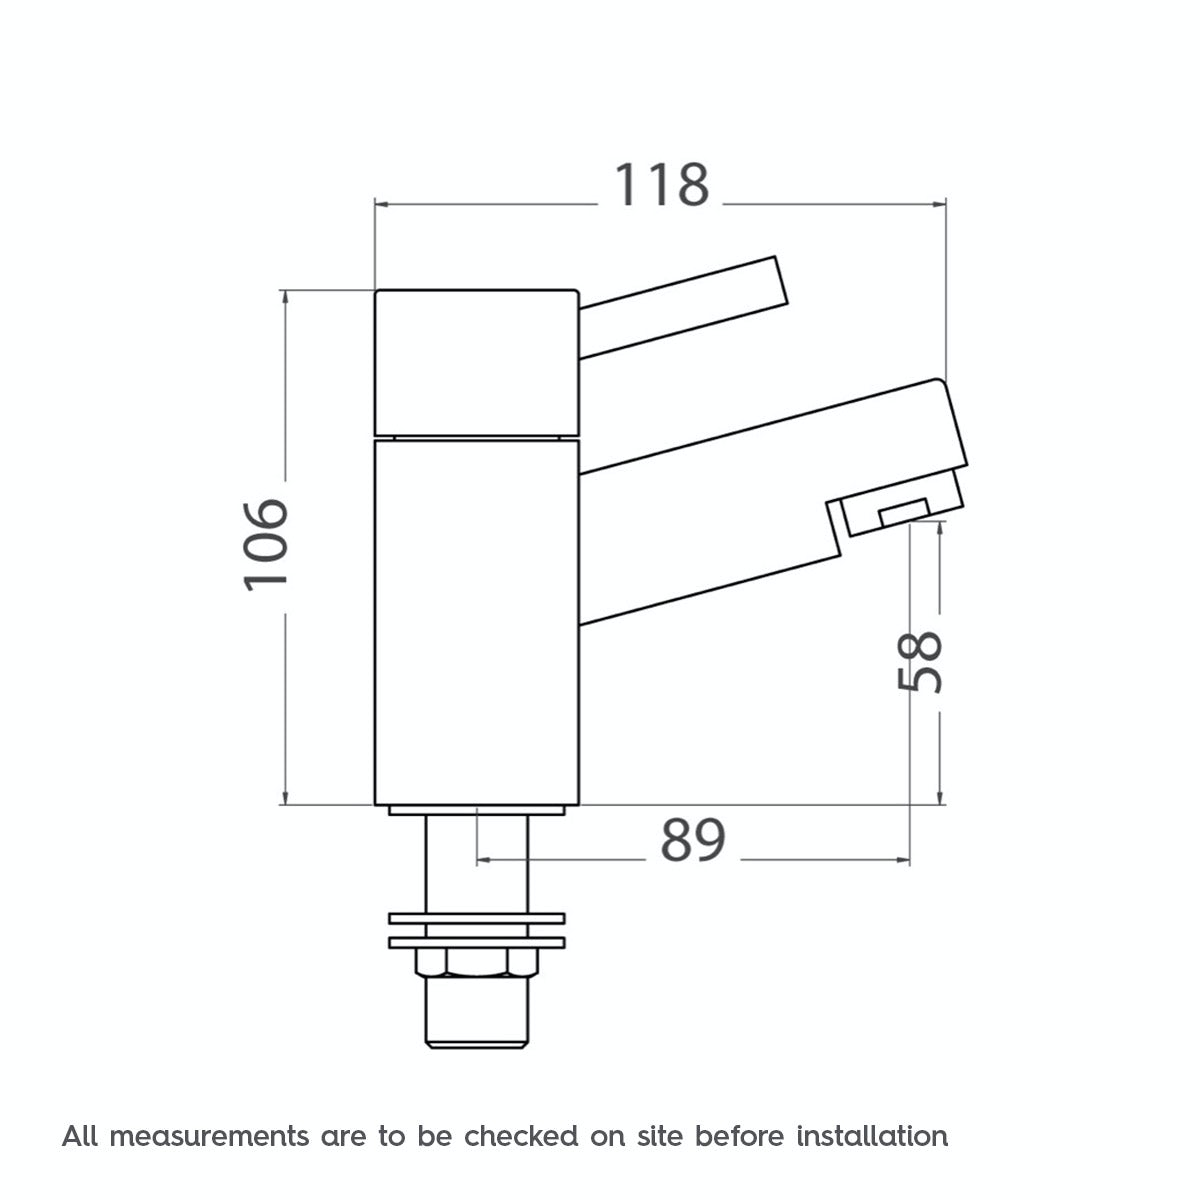 Dimensions for Orchard Wharfe basin pillar taps